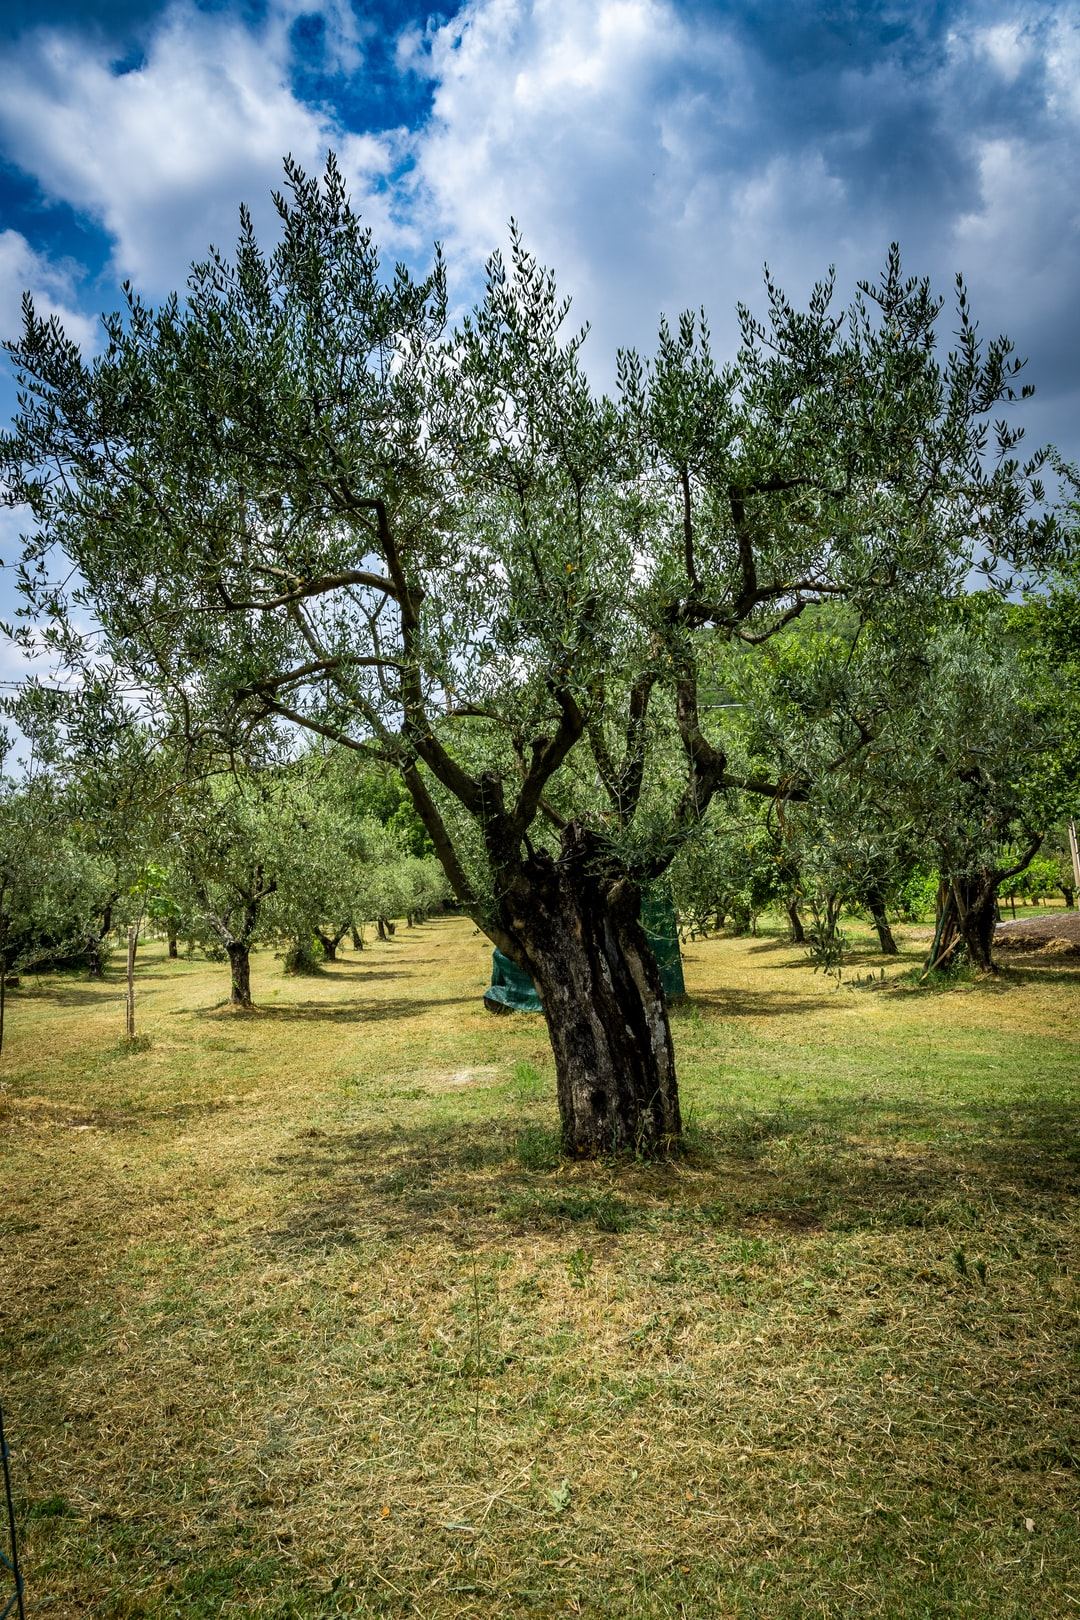 Olive tree reaches towards the sky in the Umbrian countryside.